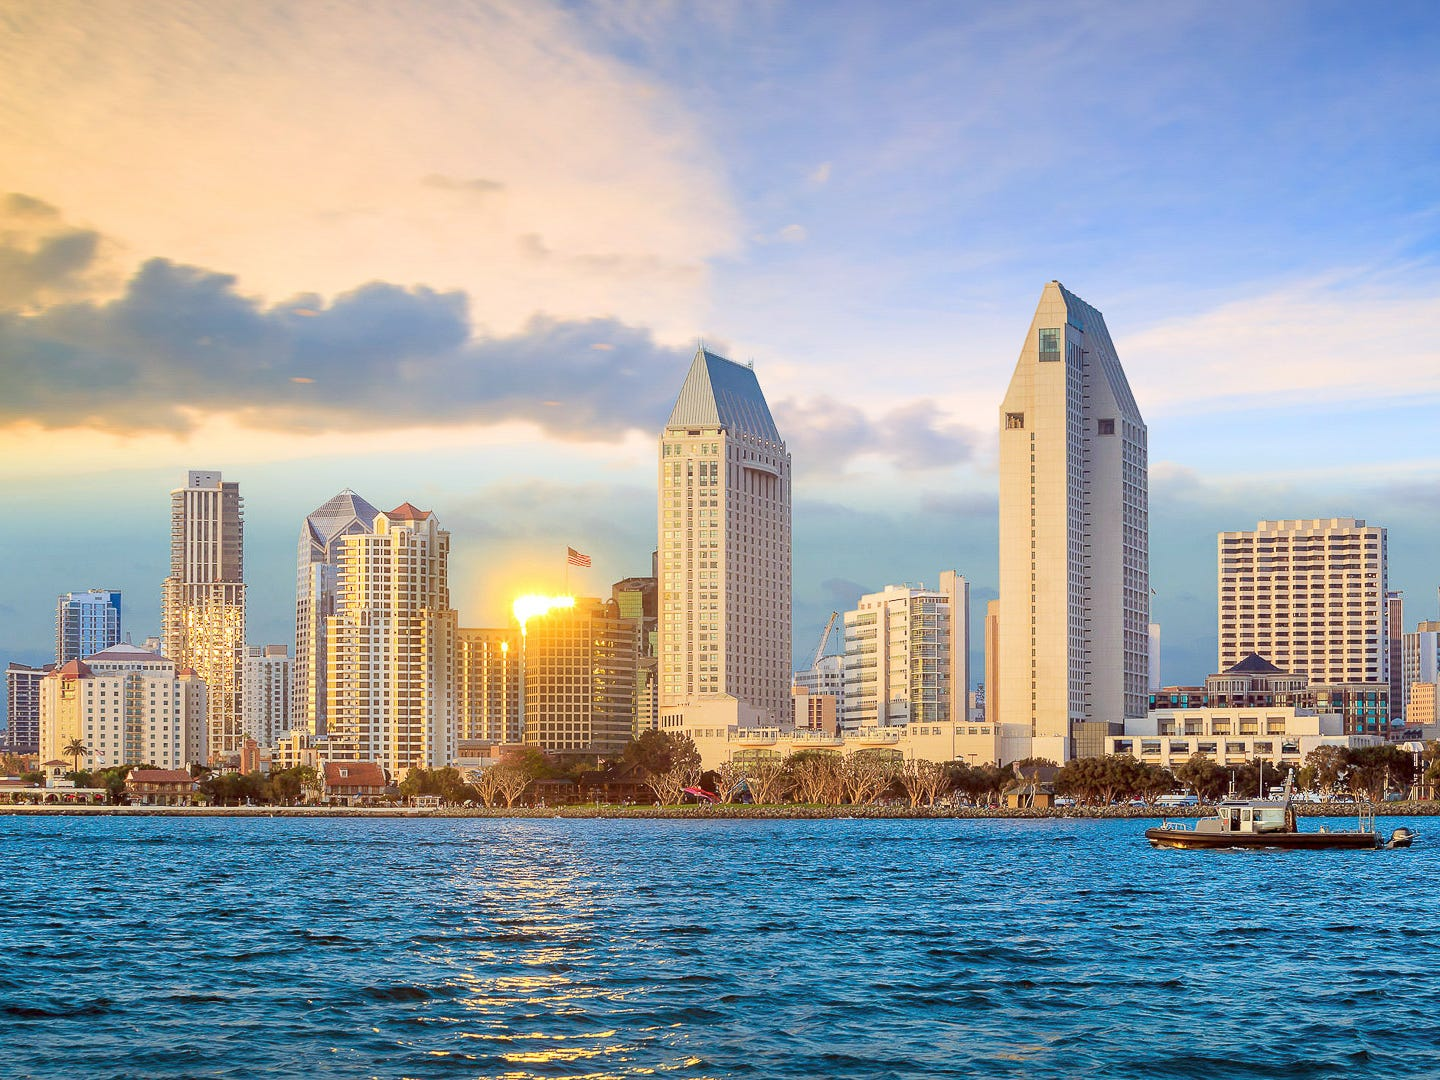 No. 8: San Diego. Thanksgiving trip cost: $943. Christmas trip cost: $957. Here's something to be thankful for: Hotel costs in San Diego are the fifth-lowest on average during Thanksgiving compared to the other cities in this ranking. Although it's an affordable place to vacation, San Diego is one of the worst places to live if you're trying to save money.